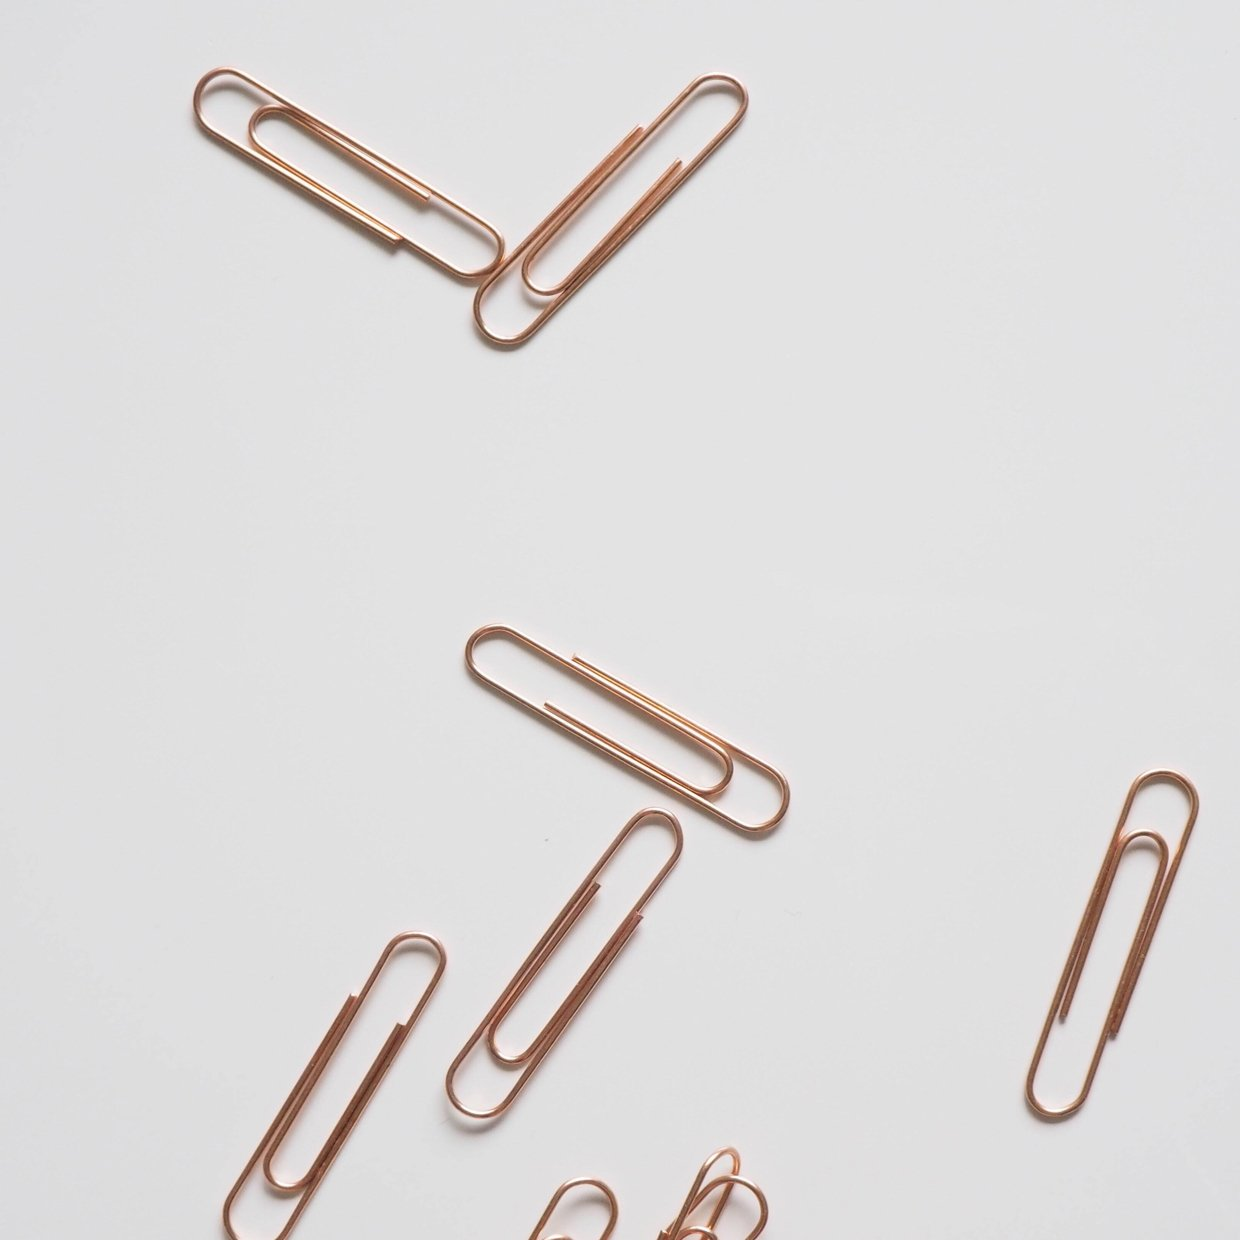 An image of paperclips, depicting a work setting